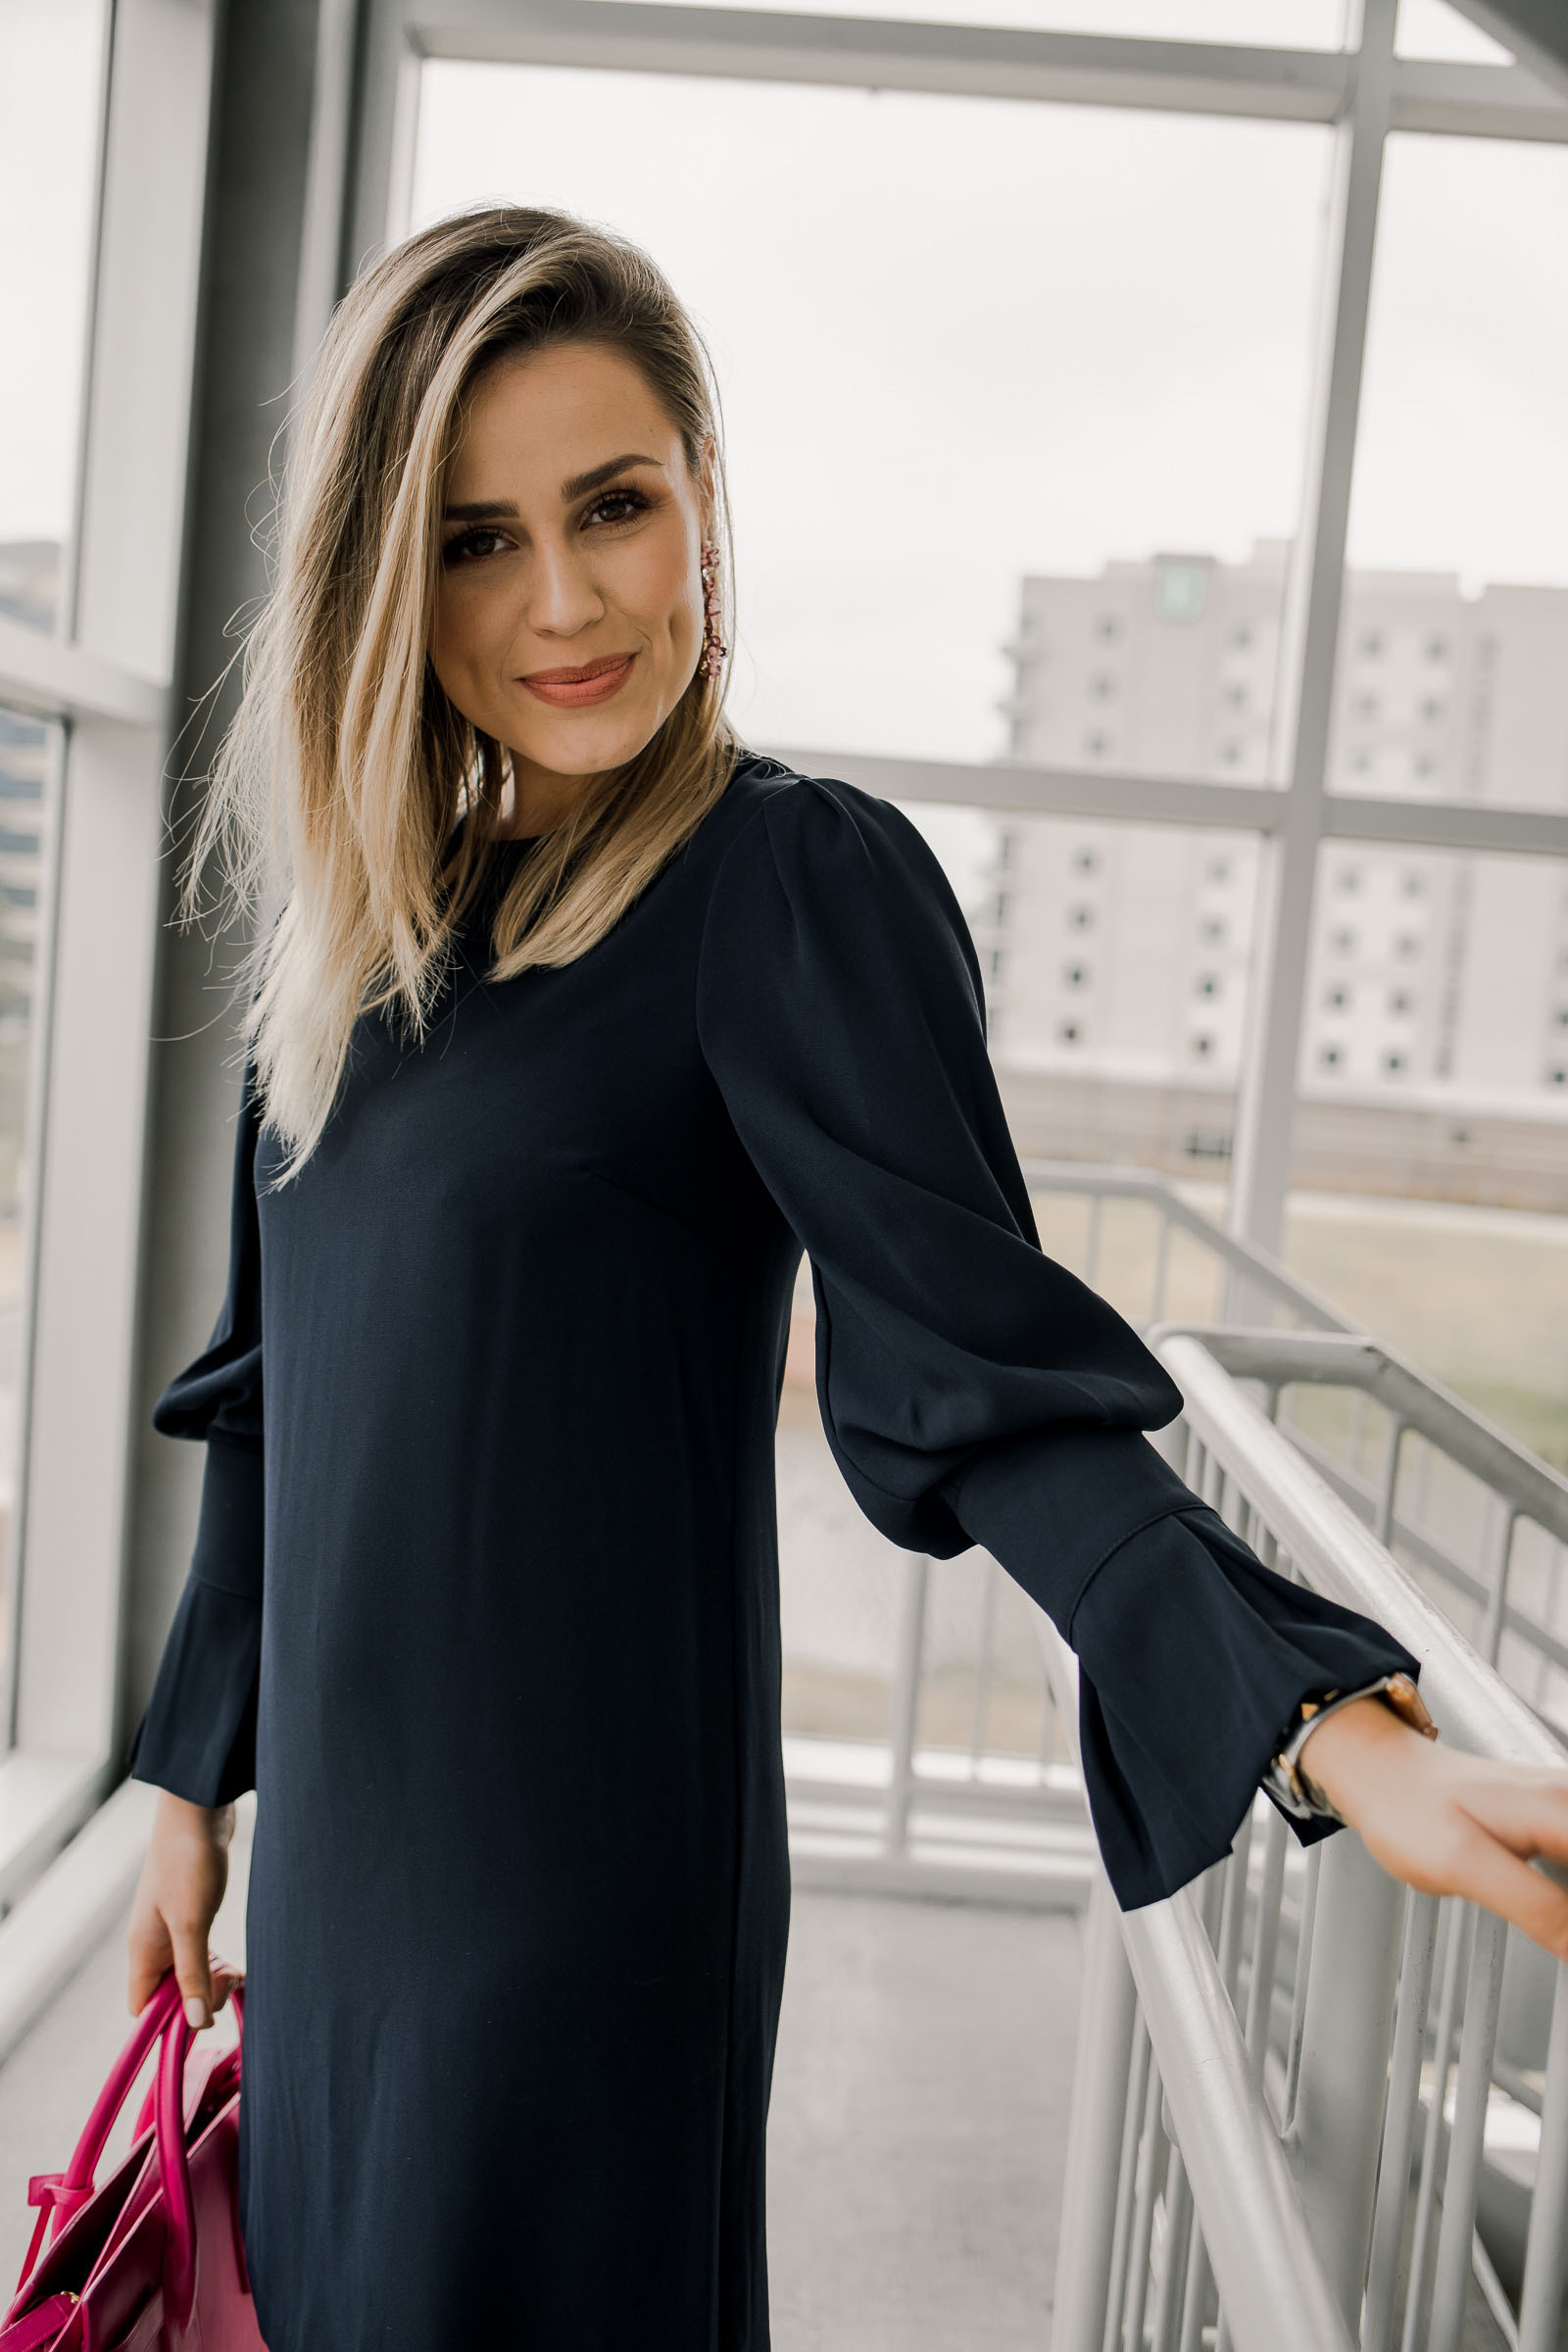 Houston fashion blogger Uptown with Elly Brown wears a navy blue shift dress